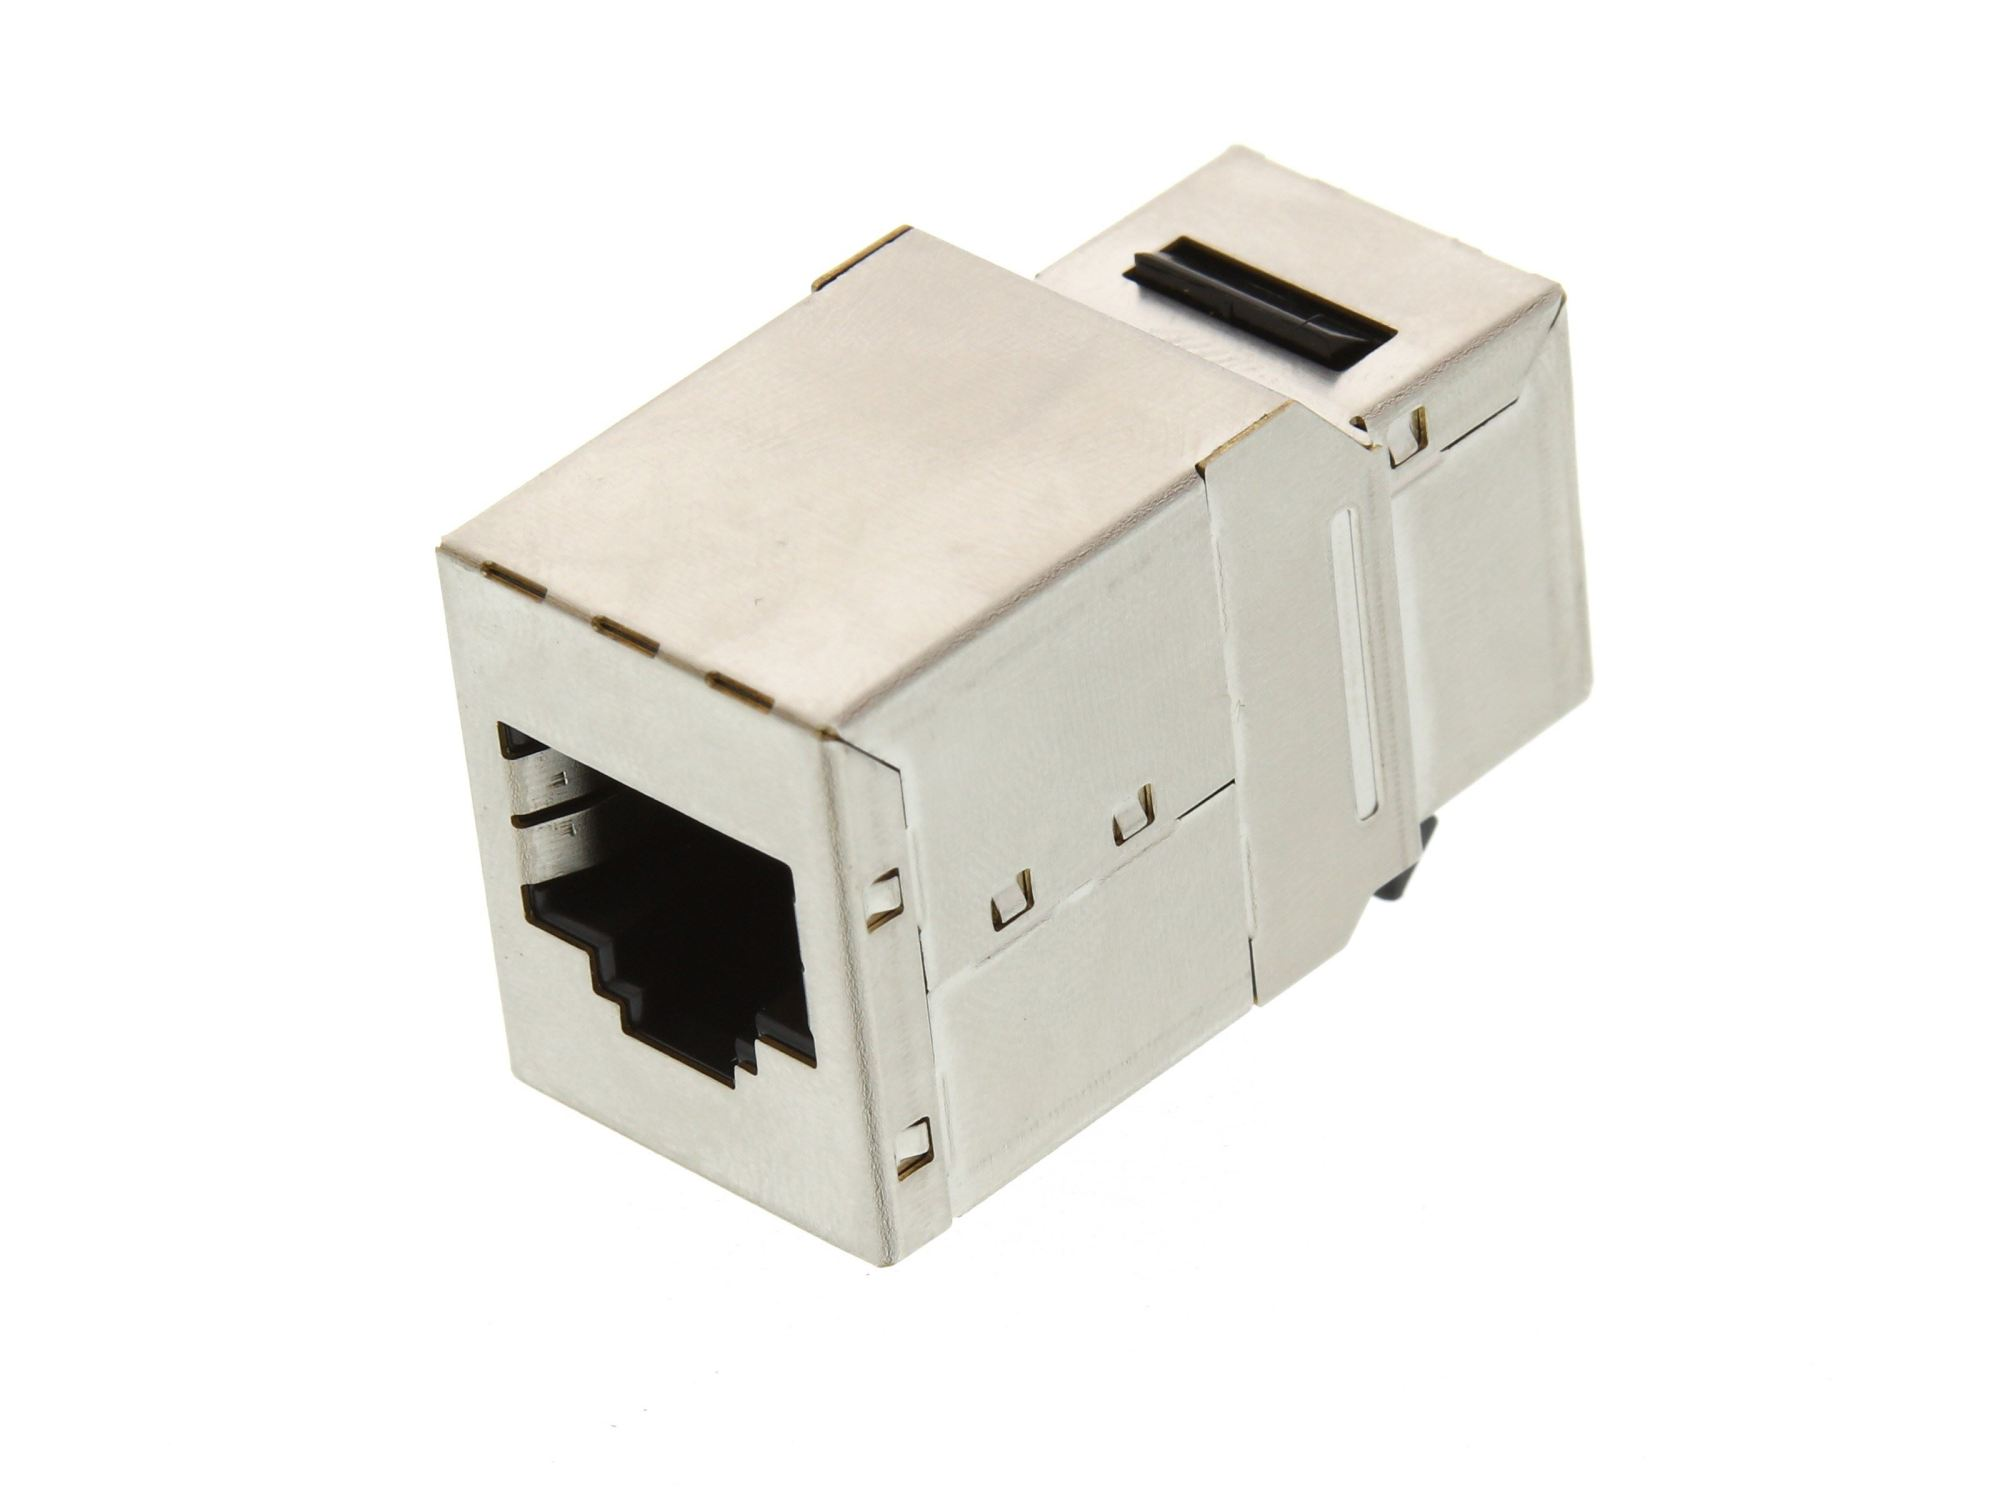 hight resolution of  picture of networx rj45 cat5e keystone jack pass through panel mount shielded